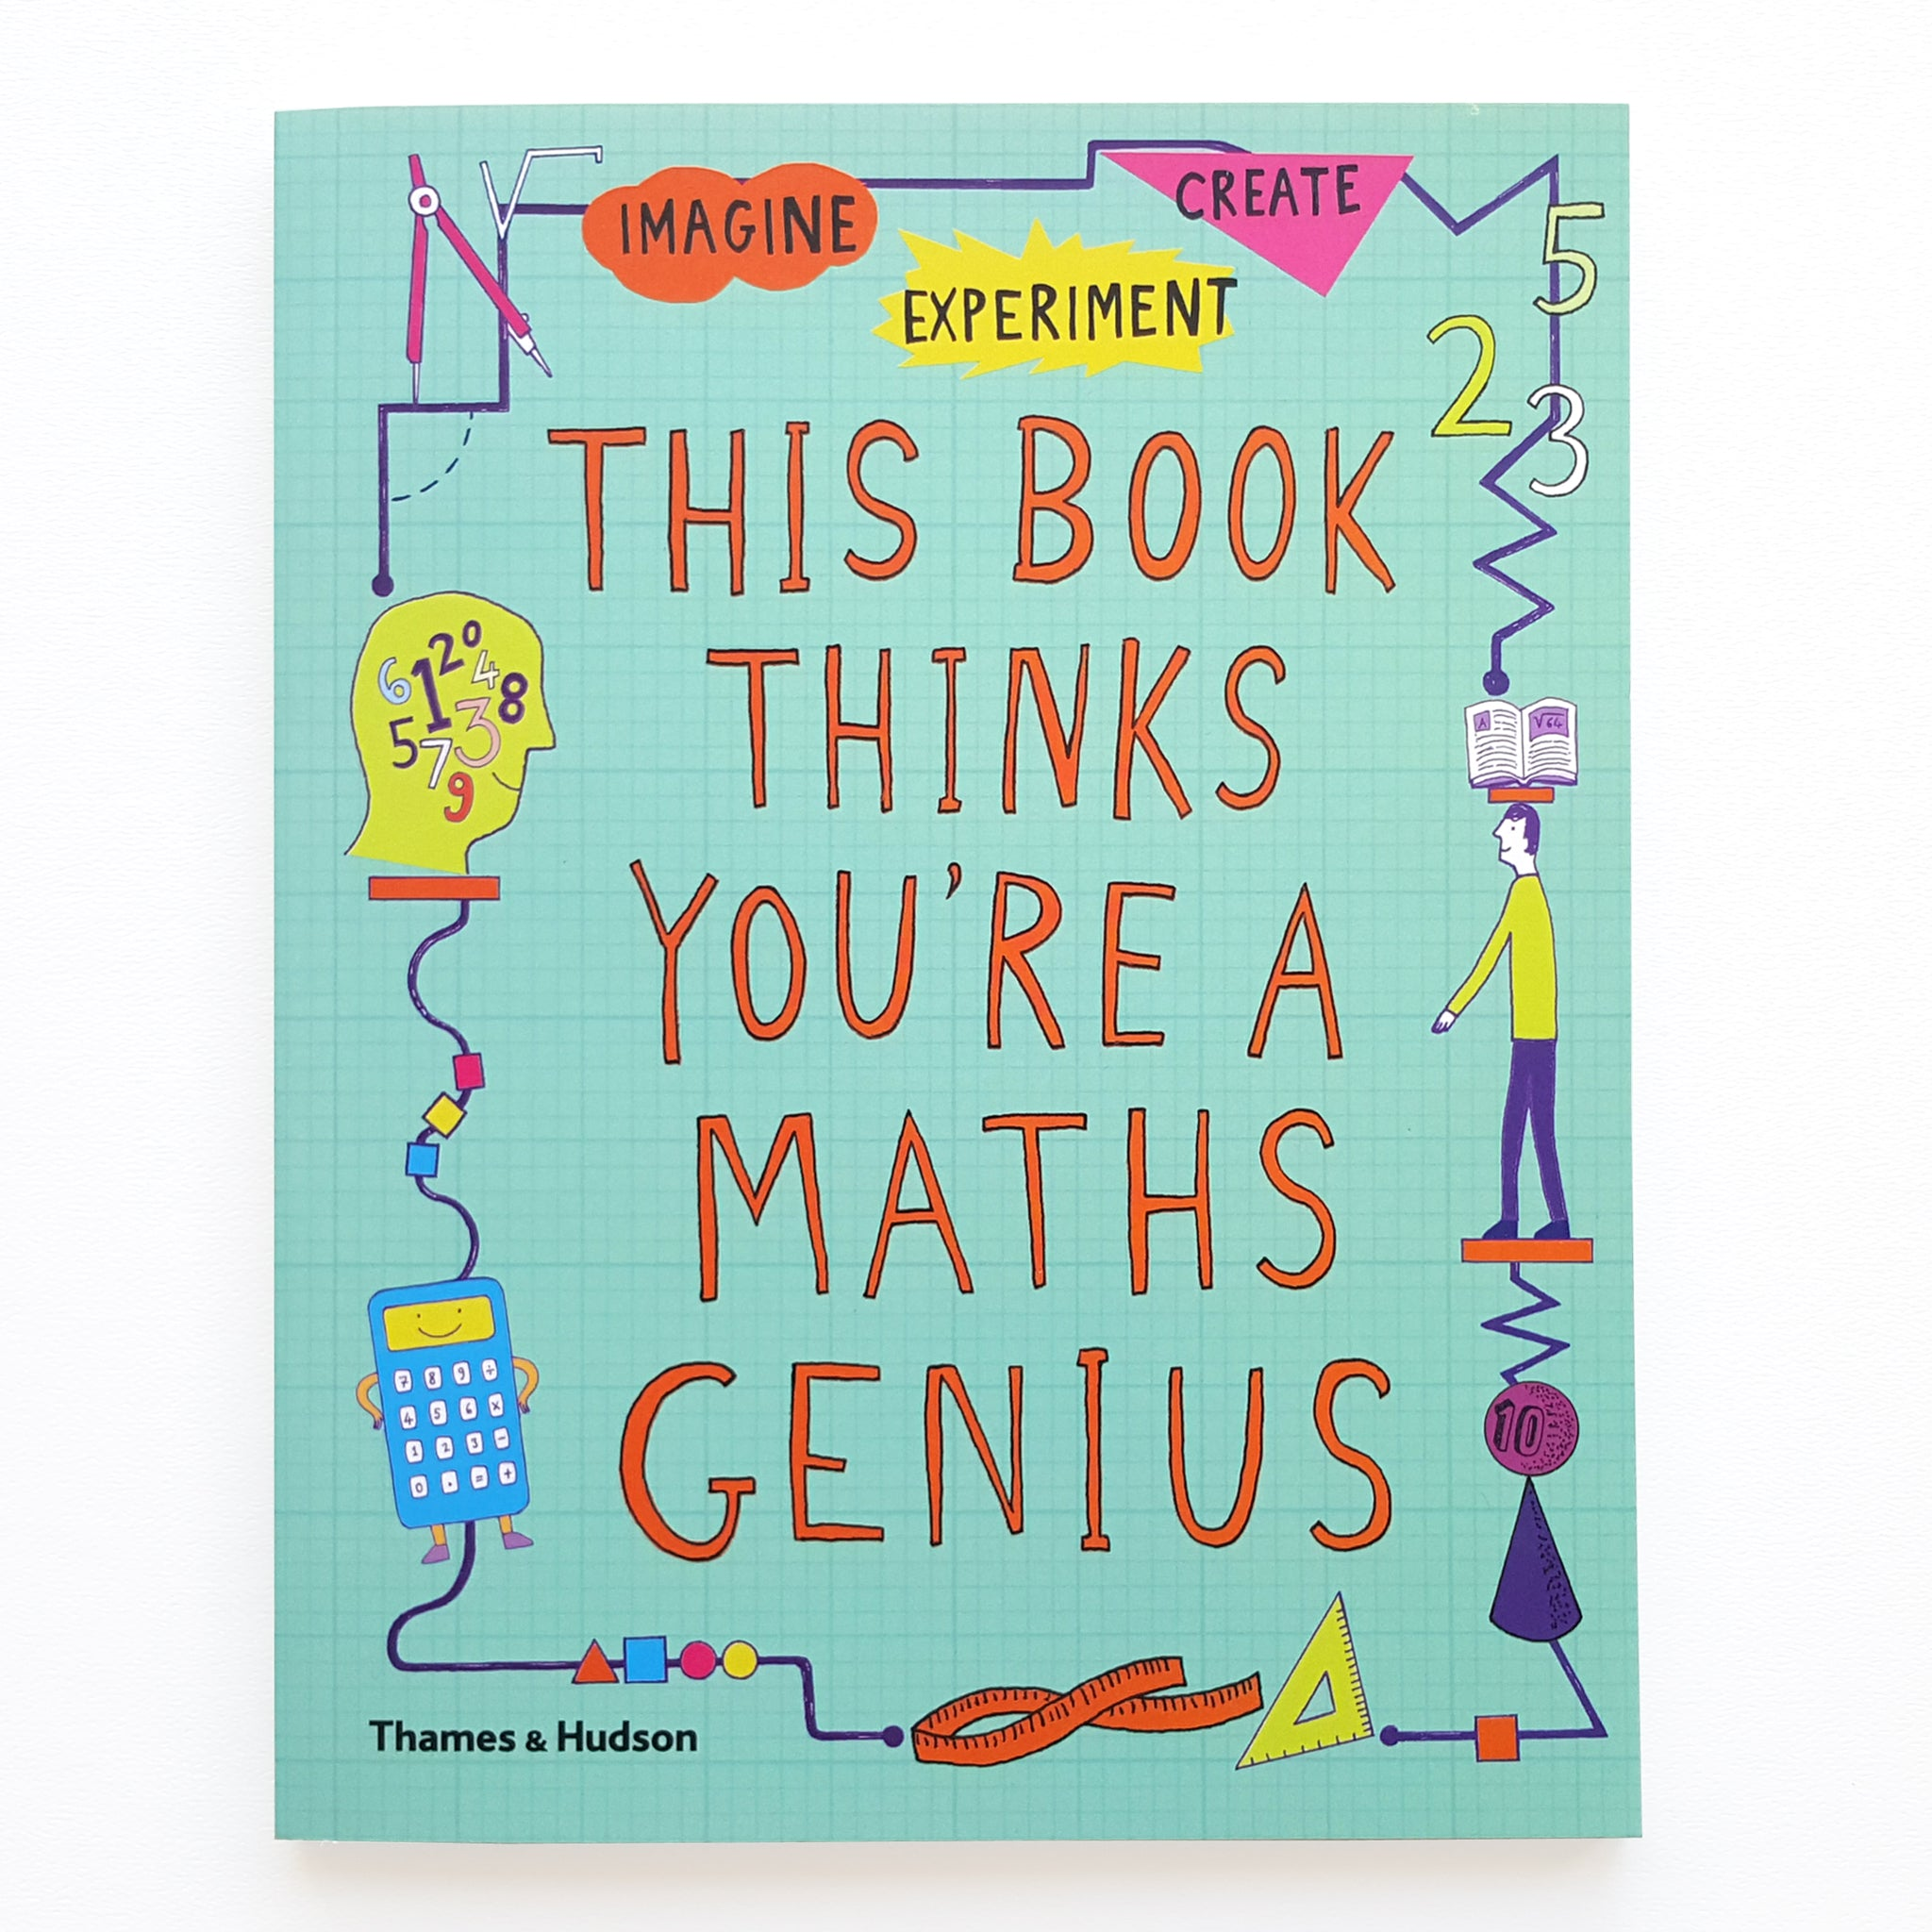 This Book Thinks You're A Maths Genius Image